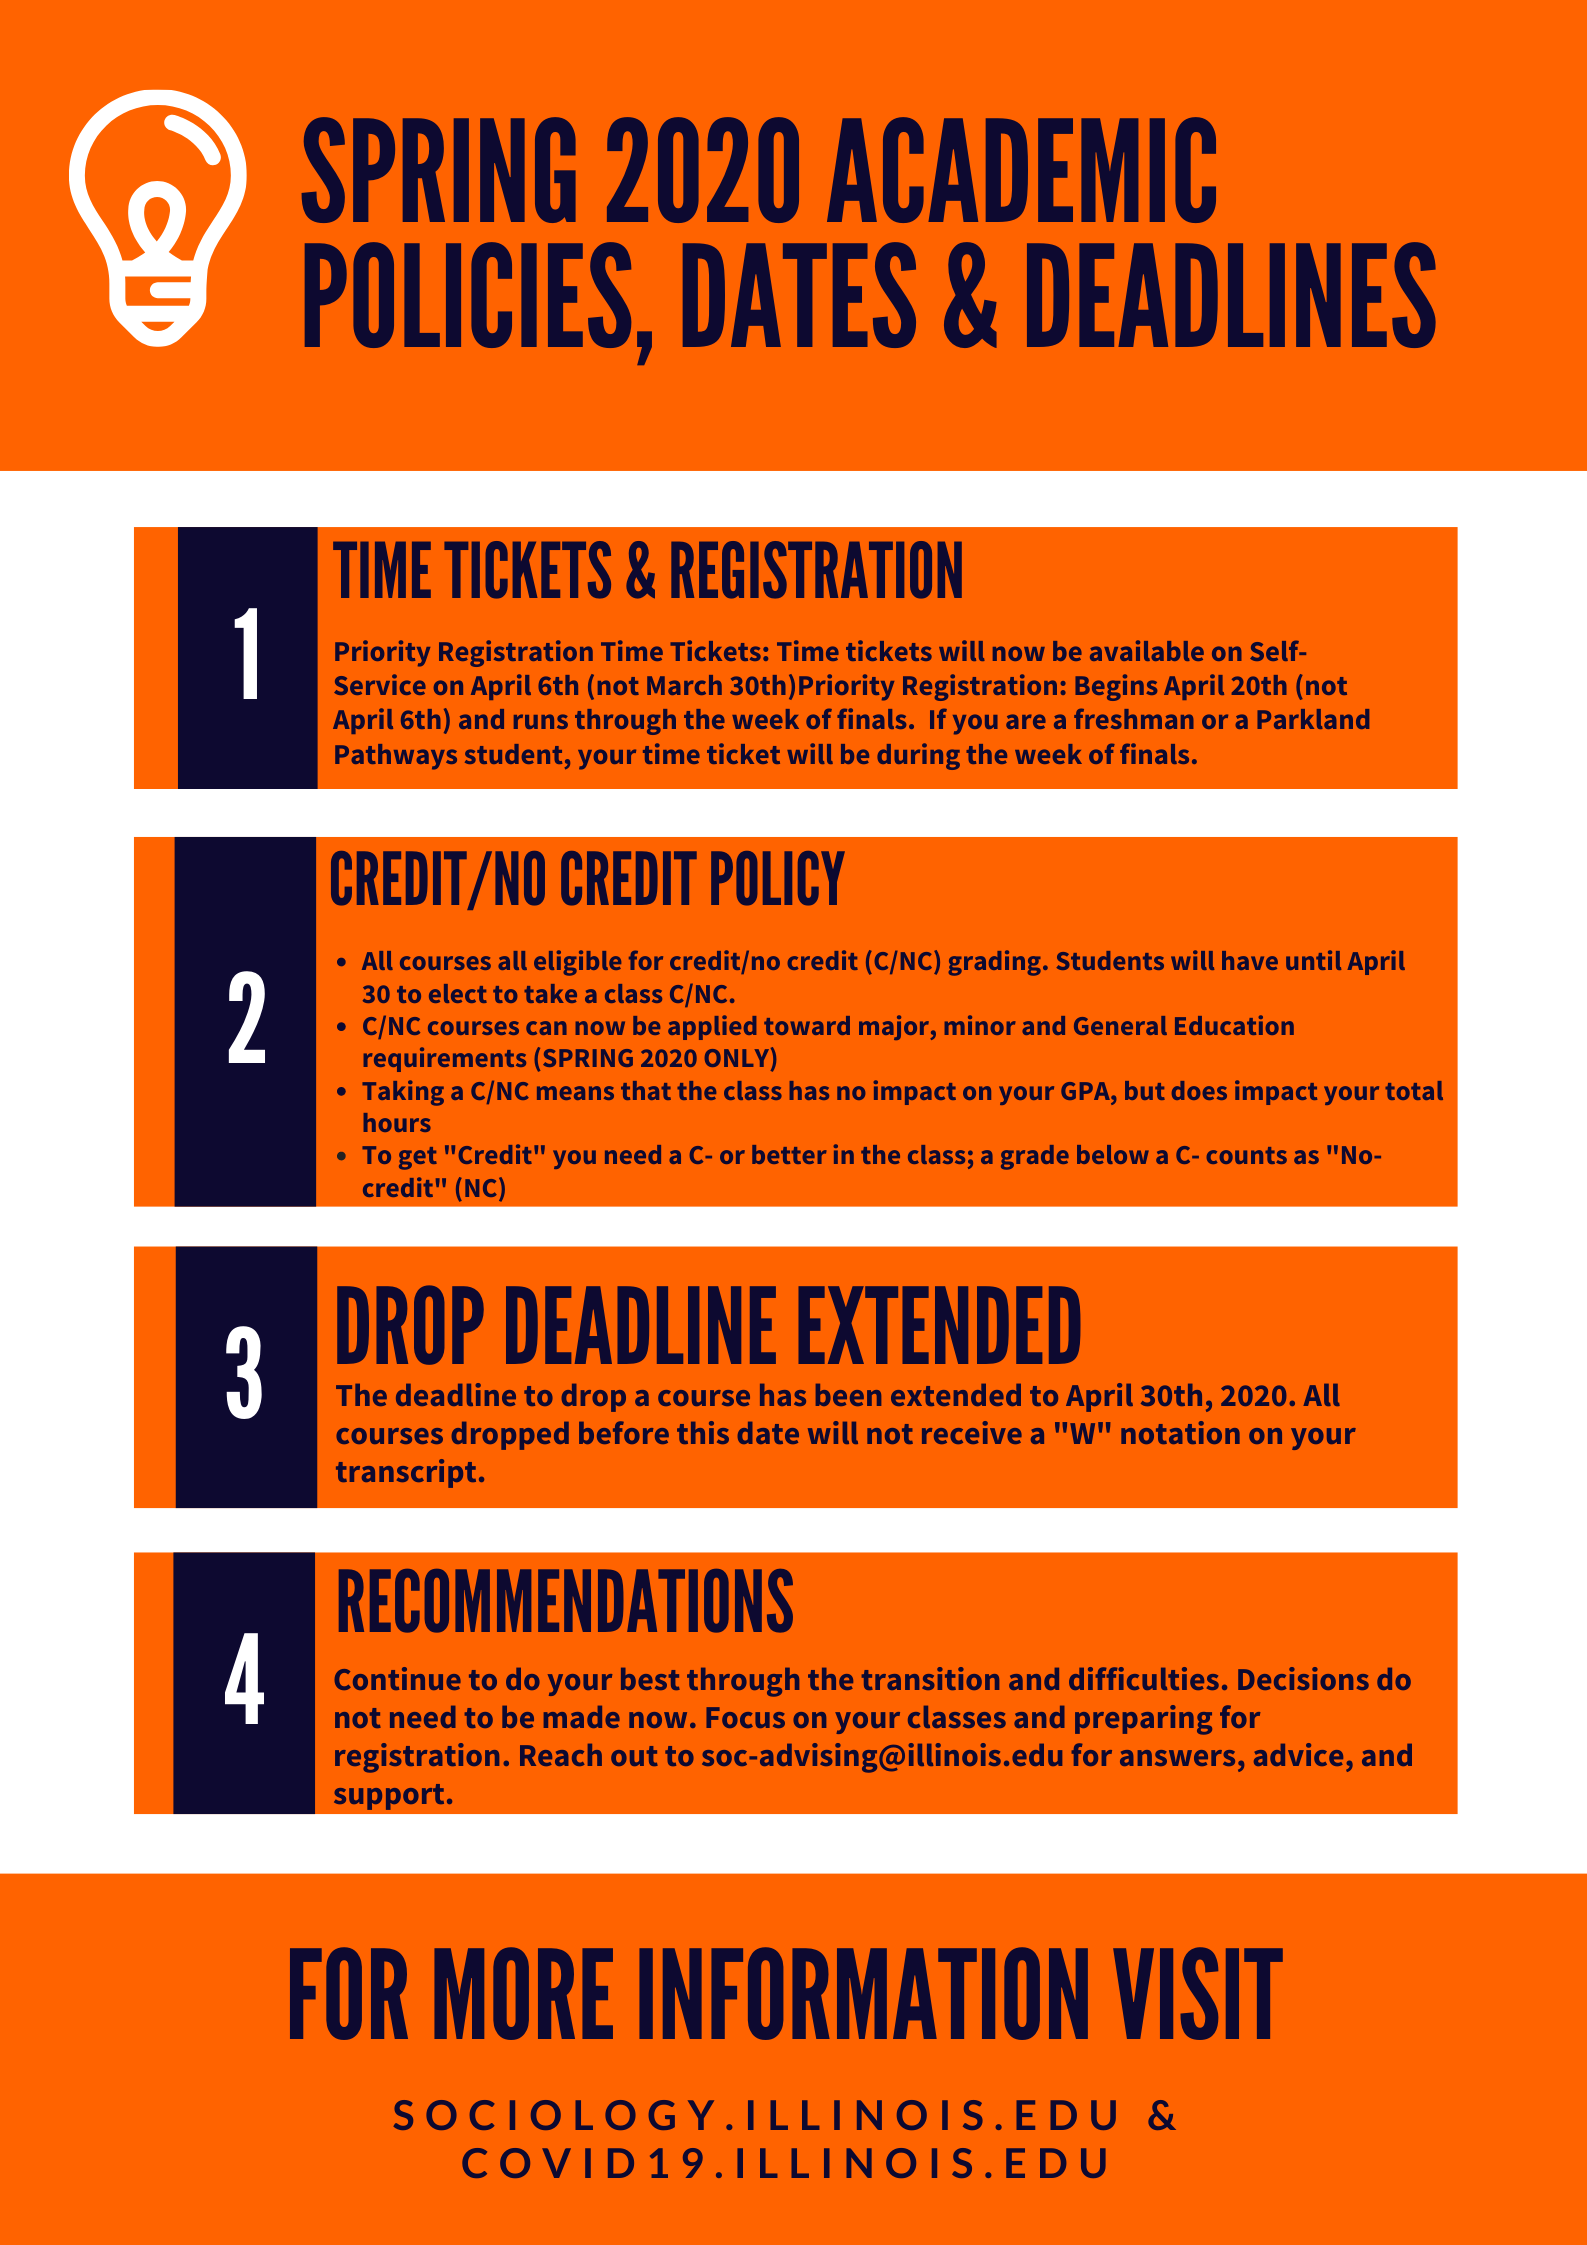 Spring 2020 Academic Policies Flyer